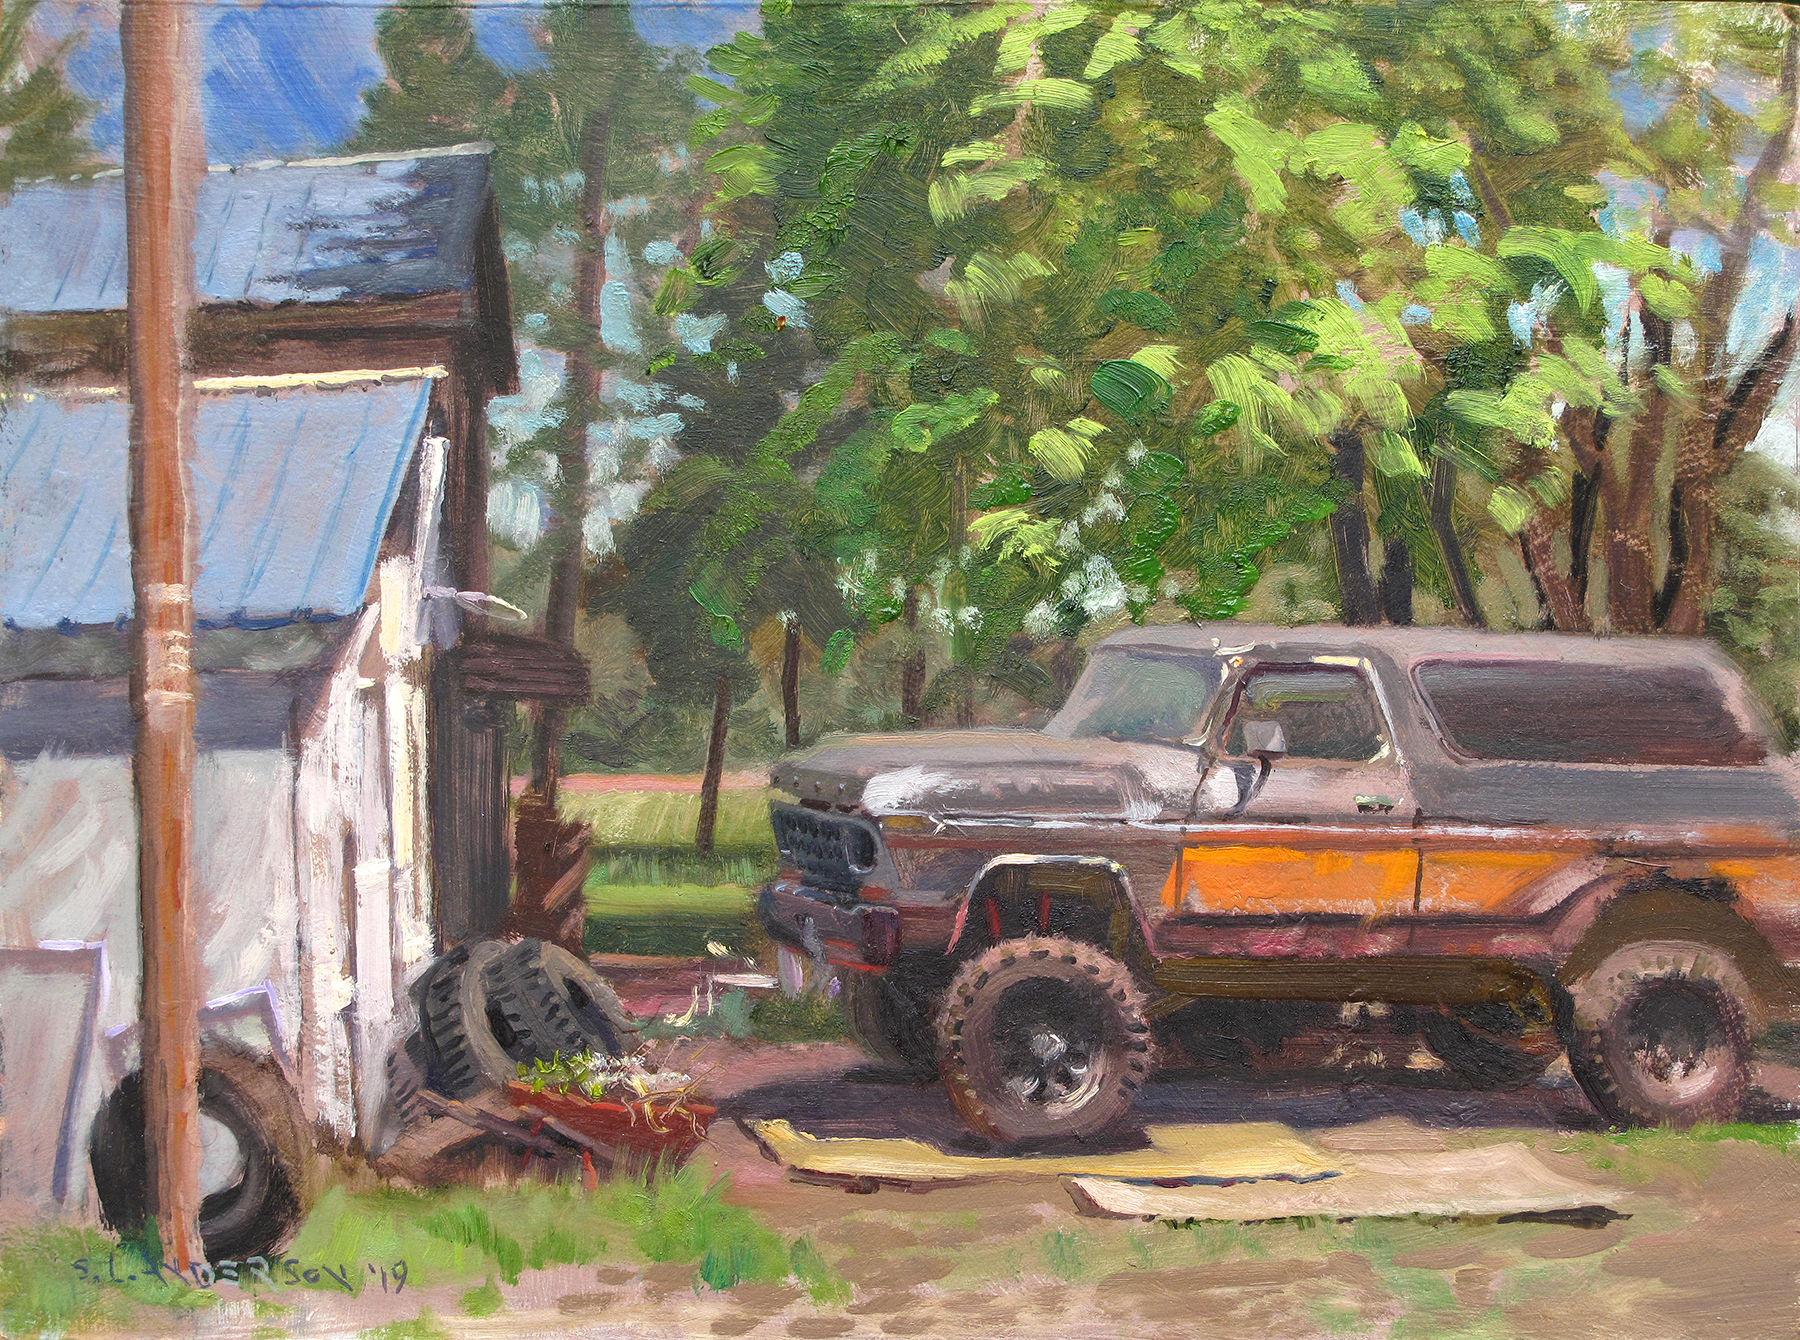 Rusty Bronco  12 x 16 oil on panel Painted on location in Danbury, Wisconsin.